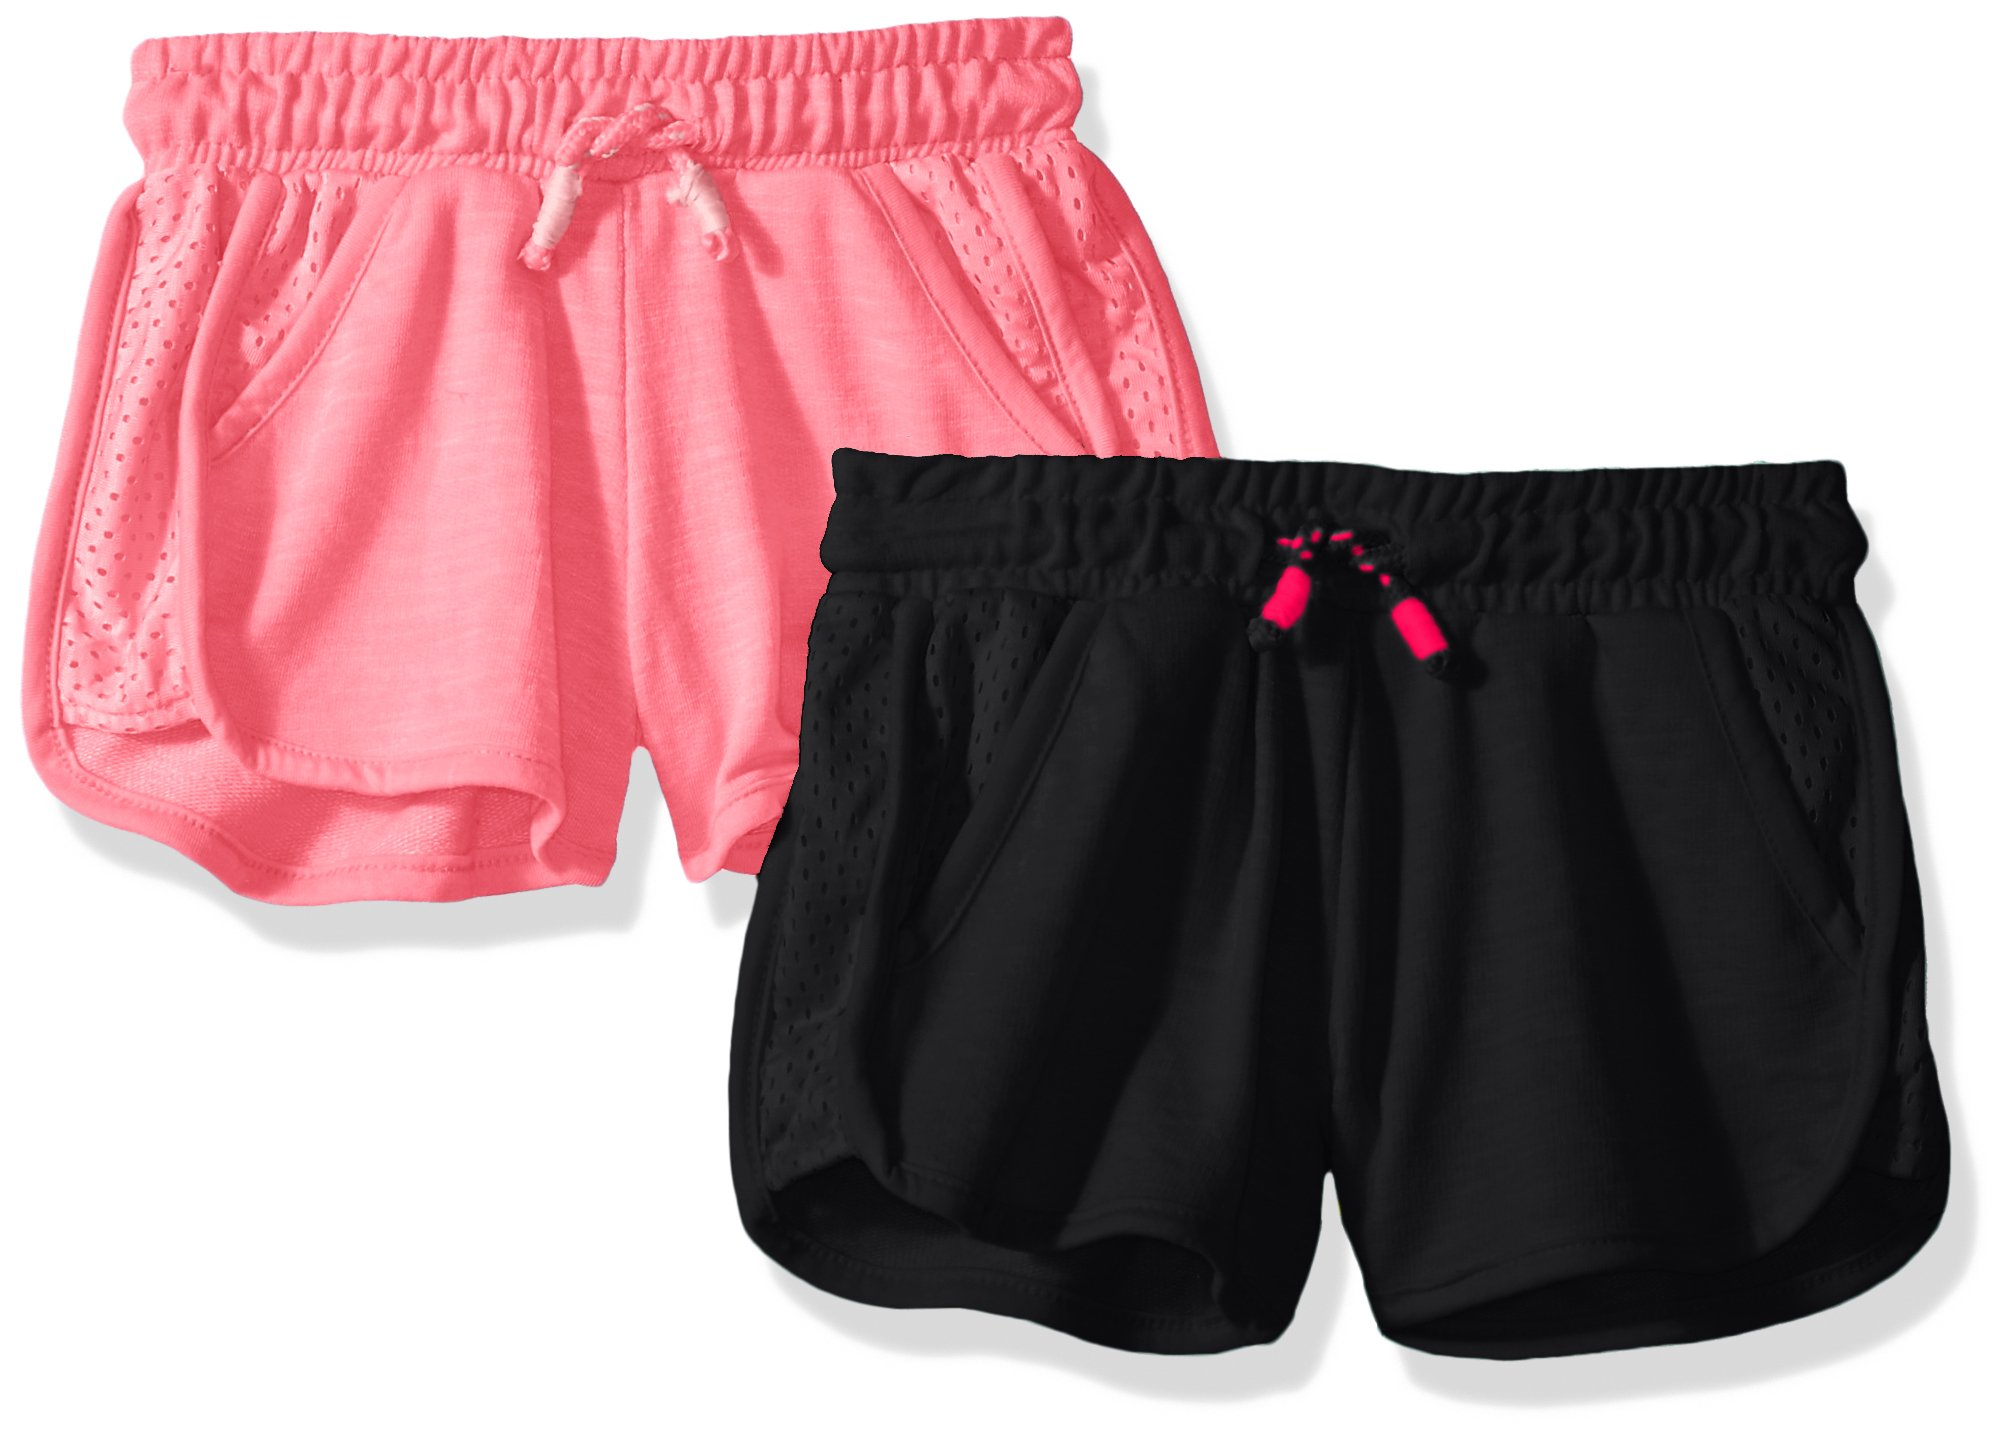 Limited Too Big Girls' 2 Pack Short, Mesh Trim Light Grey with Neon Light Pink/Multi, 7/8